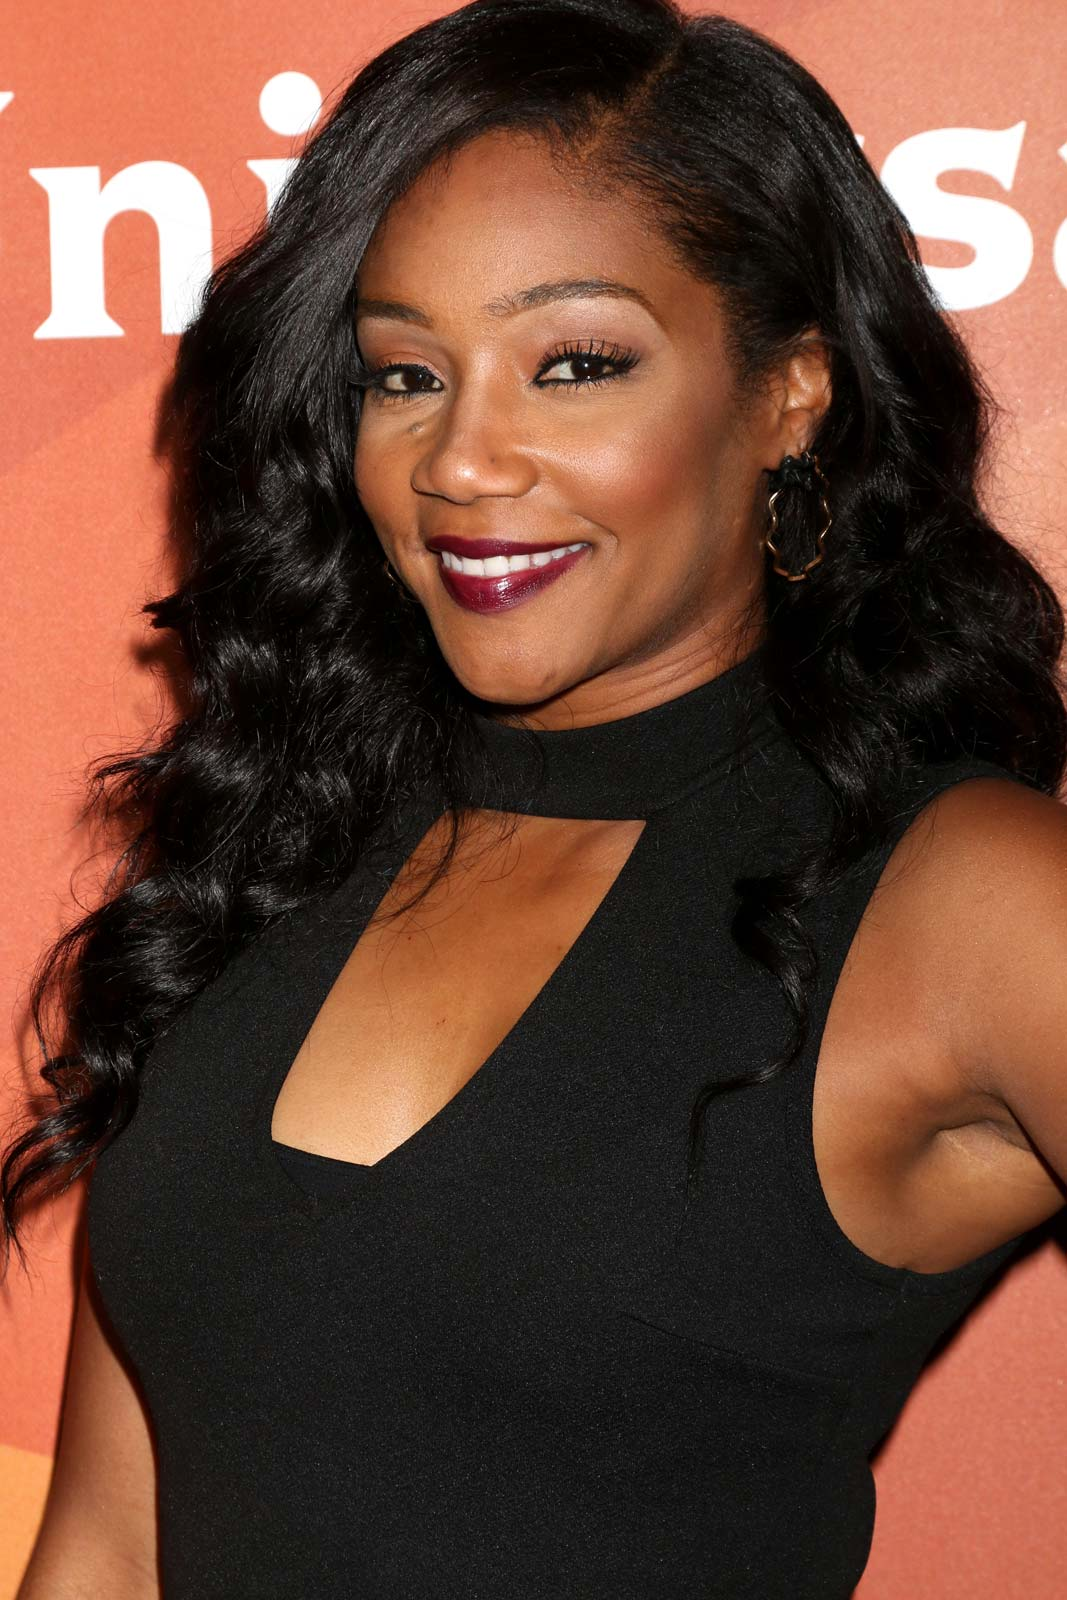 Tiffany Haddish Britannica 2017 photo